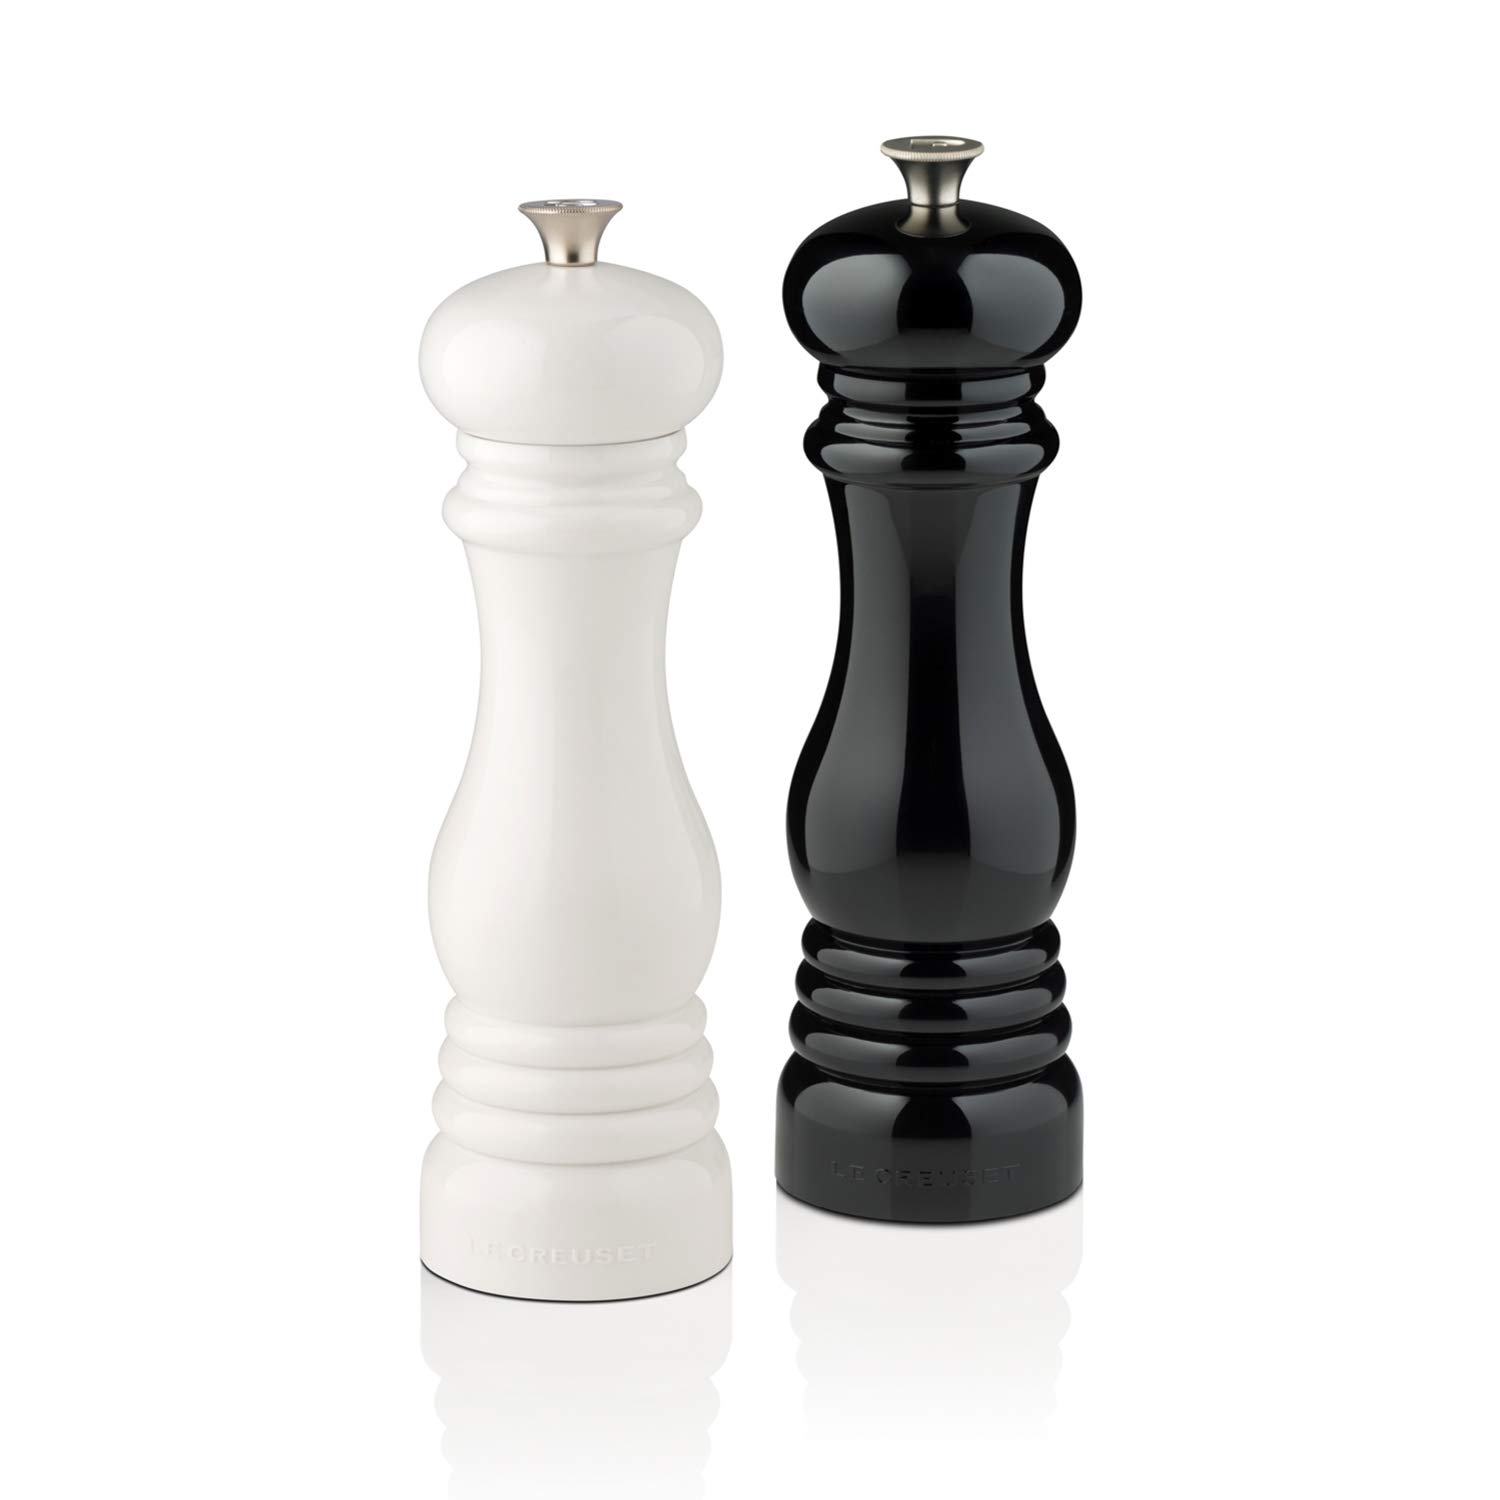 Le Creuset MG610-BW Salt and Pepper Mill Set, 8-Inch Black and White